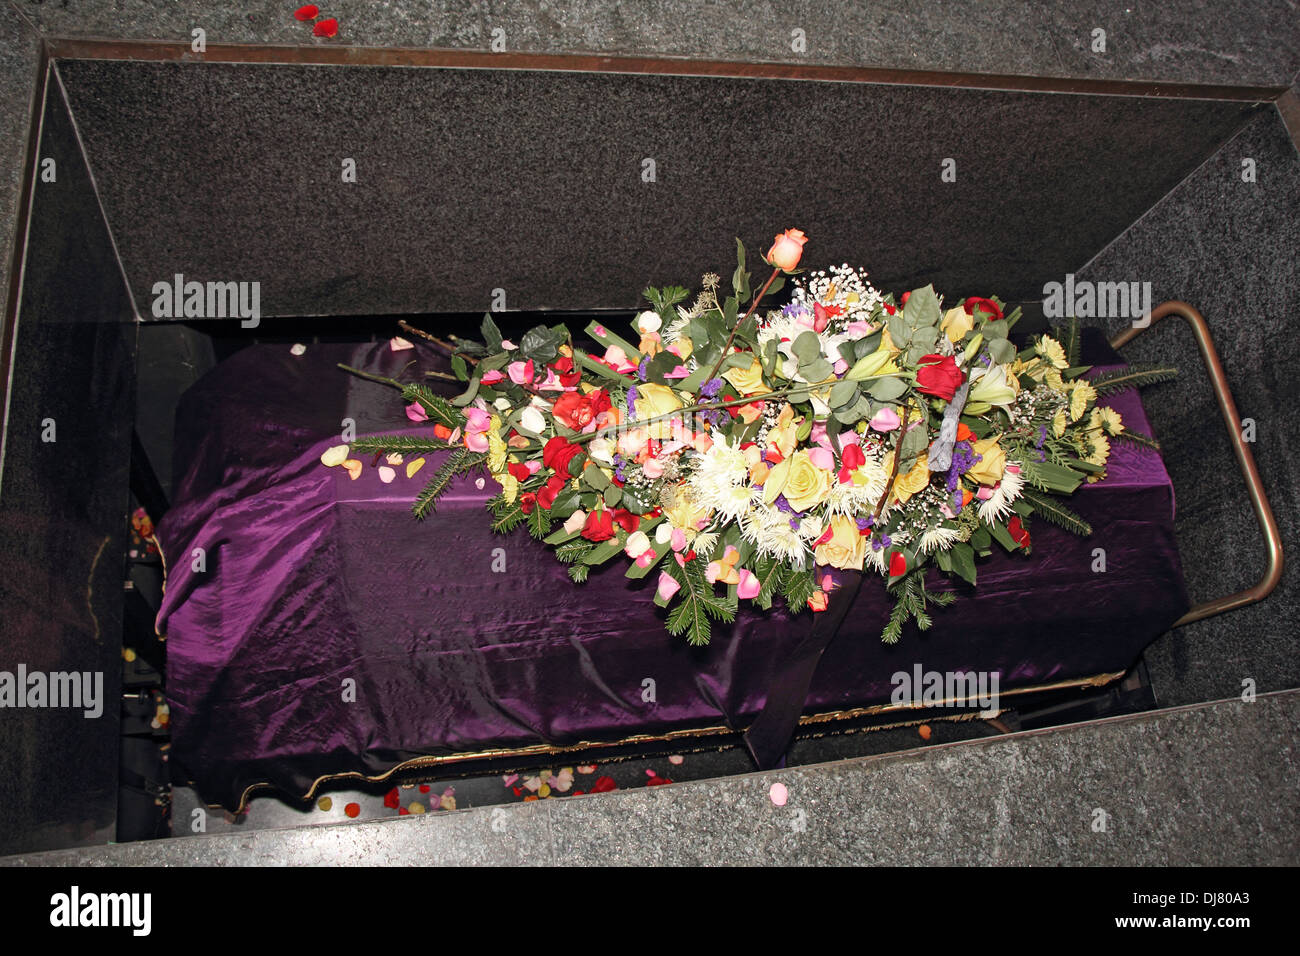 Tomb flower arrangement stock photos tomb flower arrangement stock a coffin in a morgue with a flower arrangement stock image izmirmasajfo